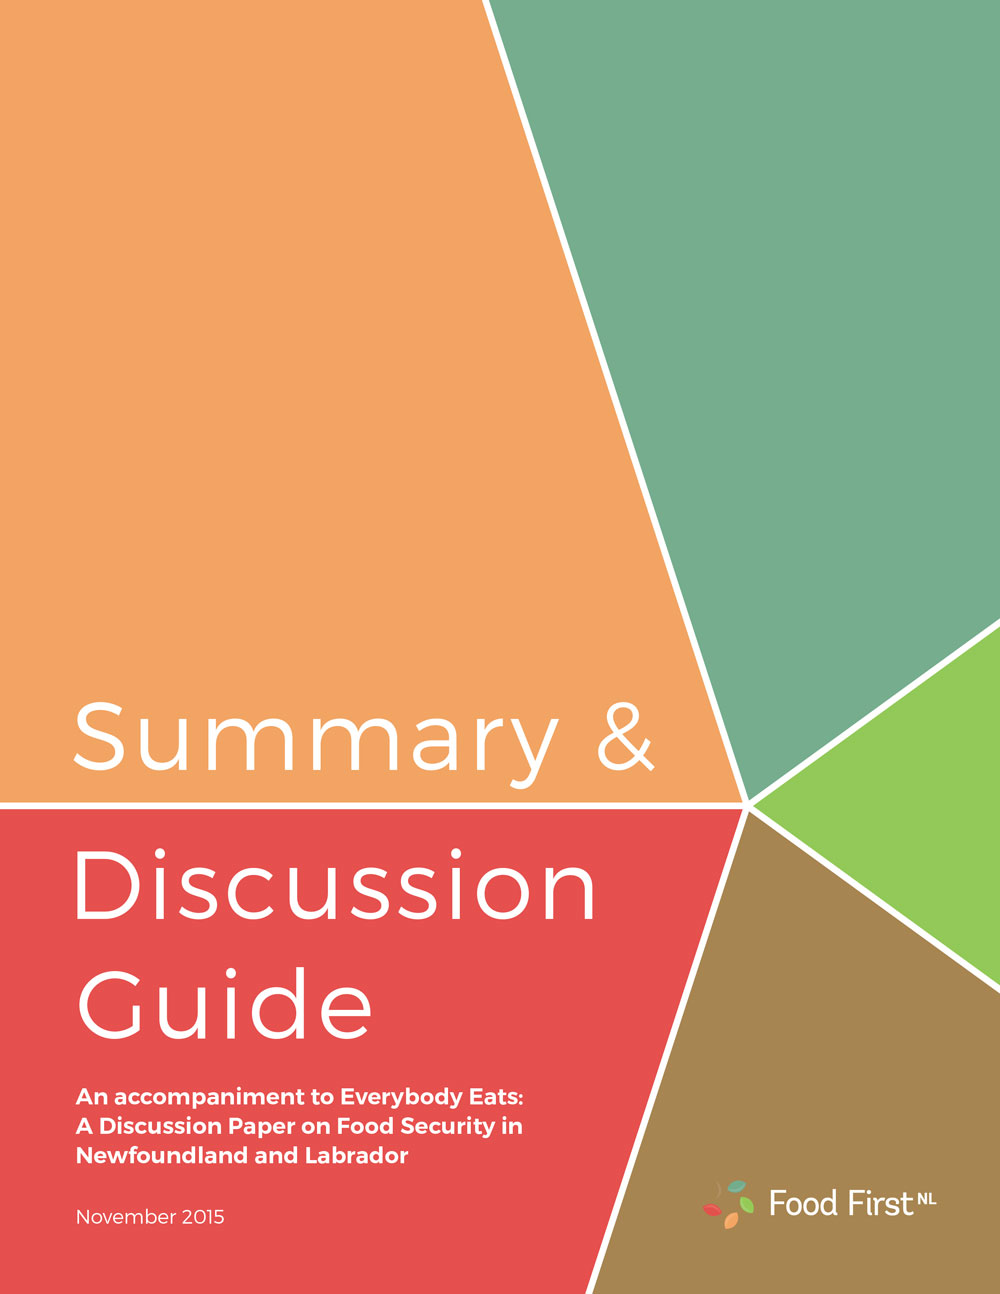 Summary+and+Discussion+Guide+for+Everybody+Eats_NL+2015+(fillable)-1.jpg